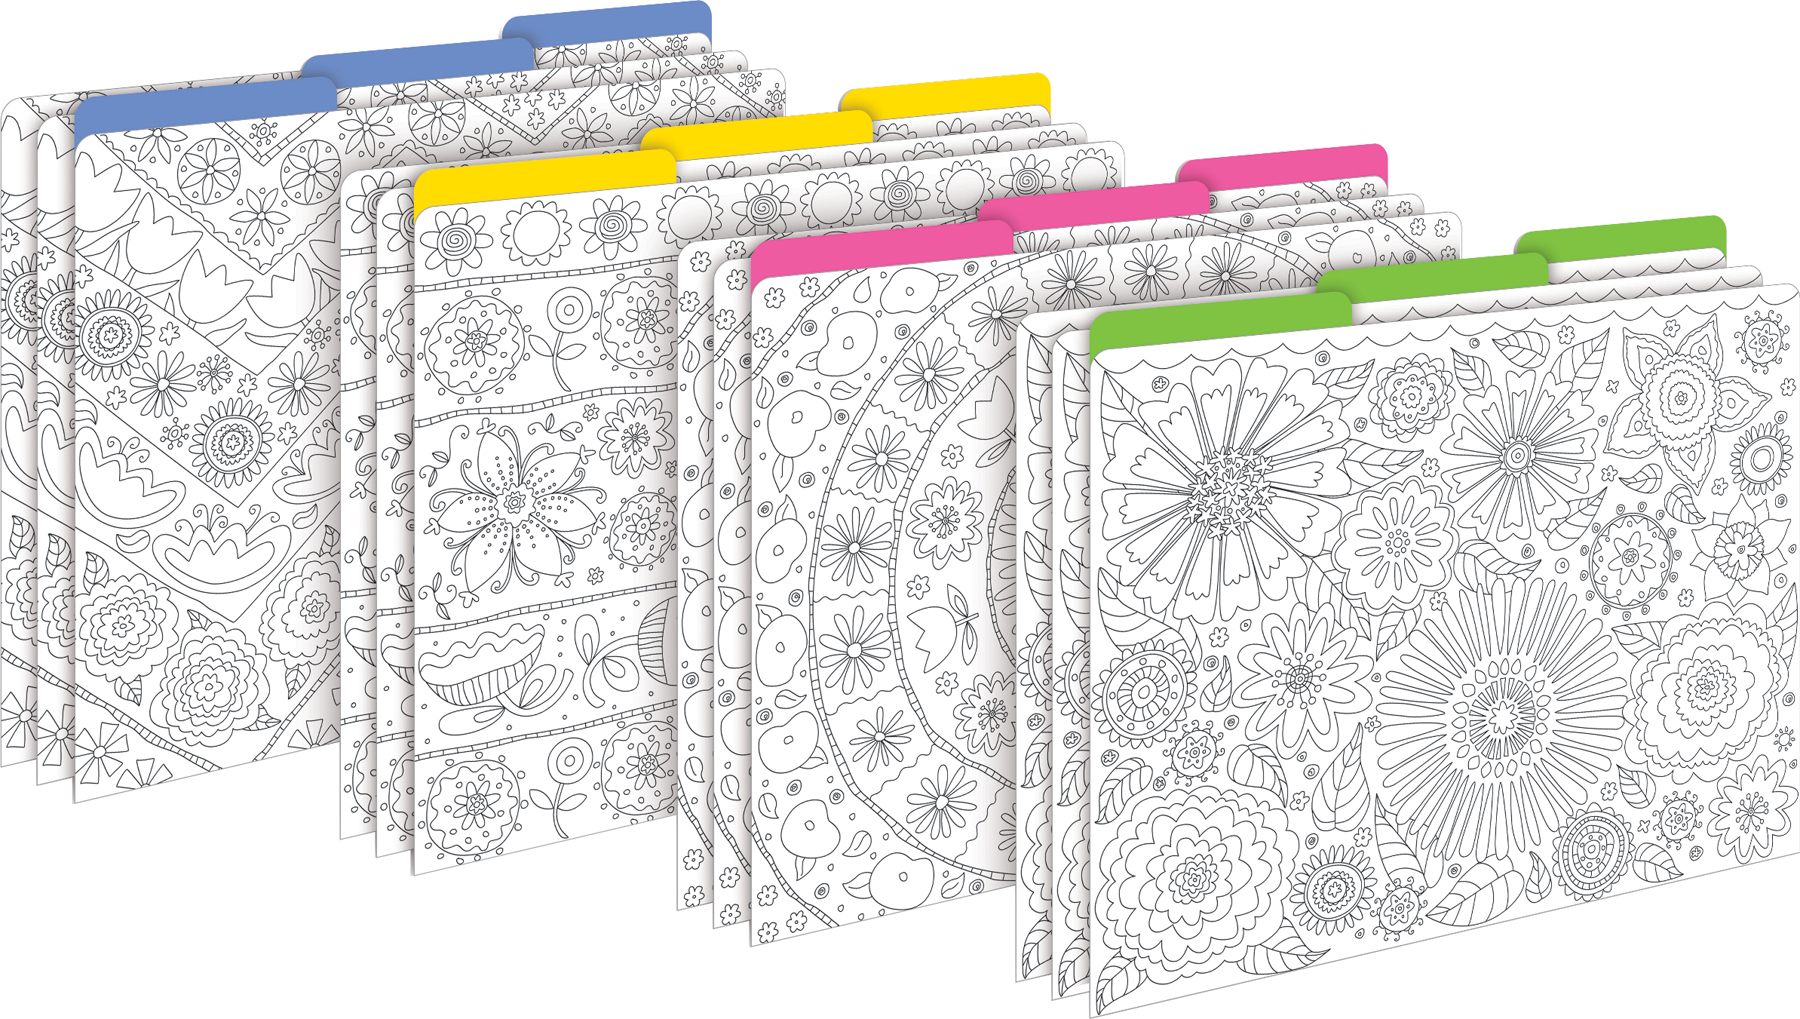 Color Me! In My Garden File Folders w/color pencils